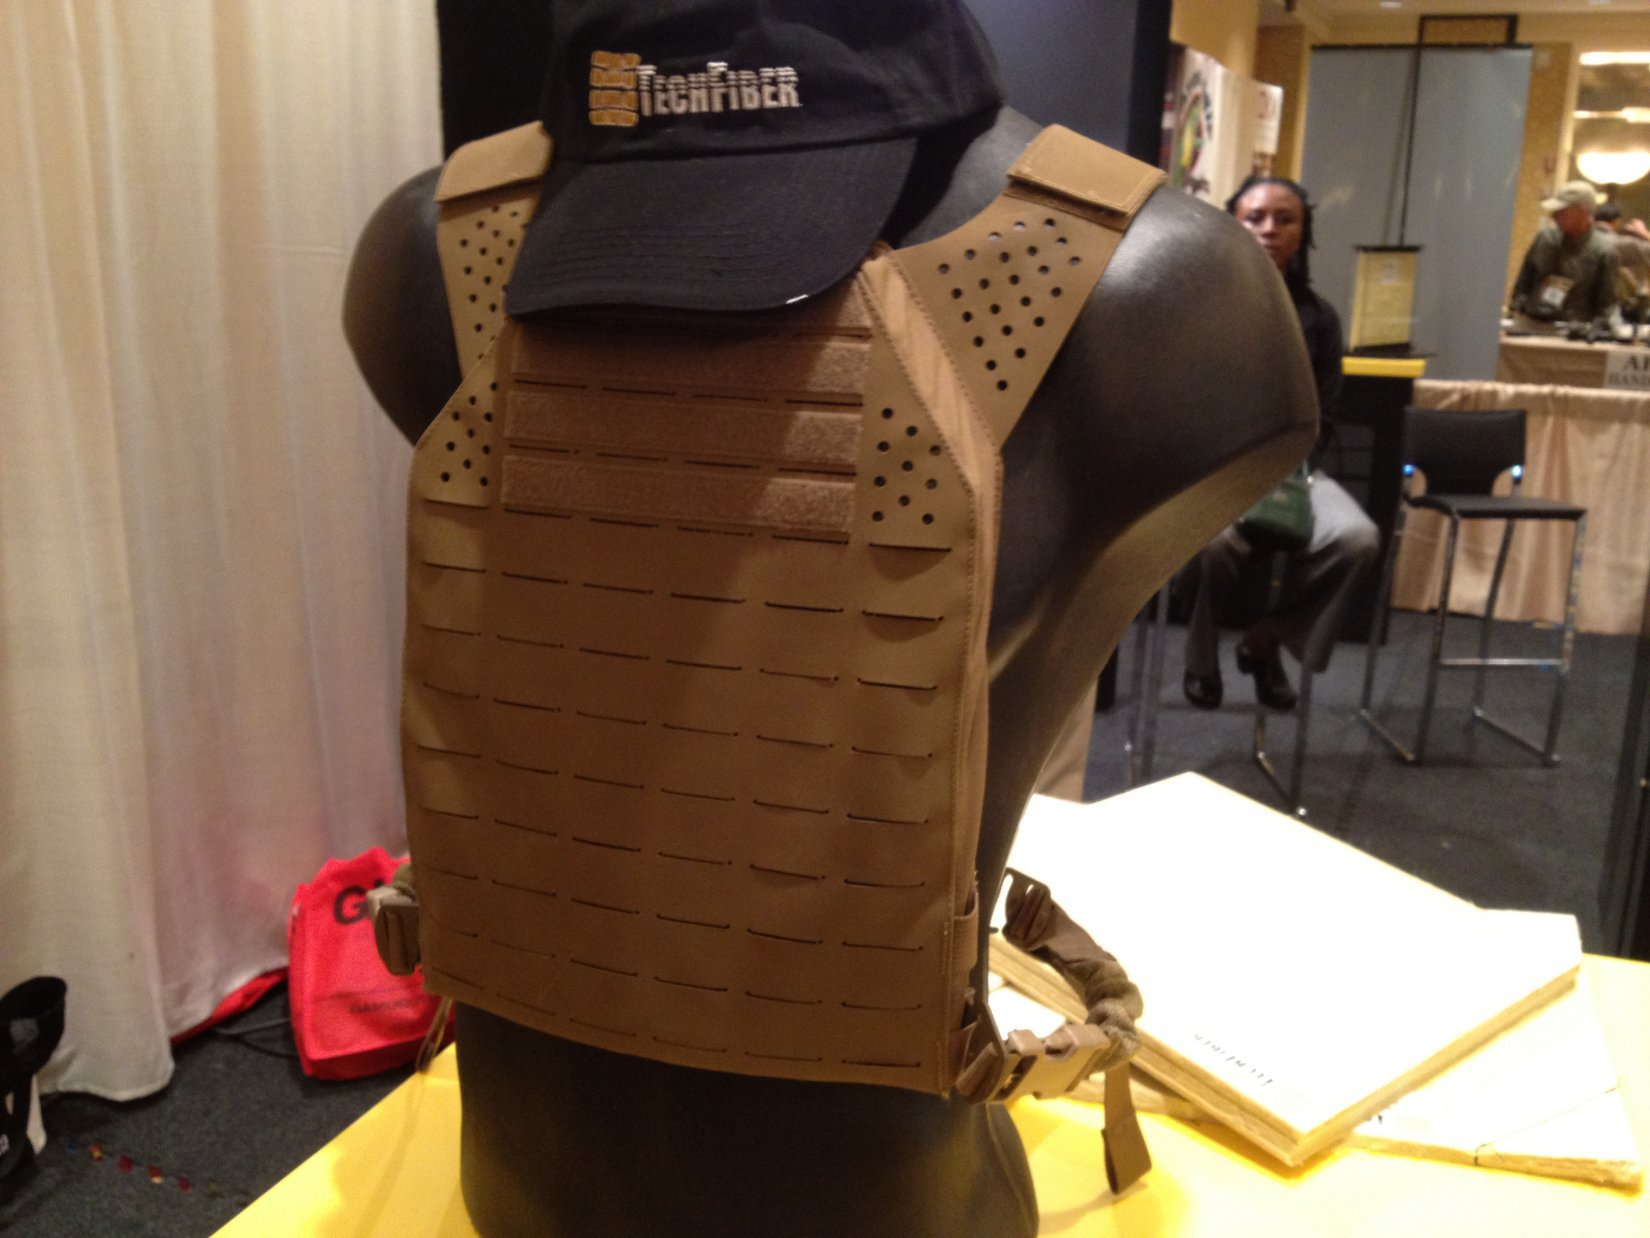 ArmorWorks Modular Plate Carrier (MPC): Scalable High-Tech Minimalist/Low-Profile Tactical Armor Plate Carrier (Military Body Armor) with SOURCE Tactical Hydration/Water Bladder System and Super-Strong Polymer Non-MOLLE MOLLE/PALS Webbing System and Shoulder Straps at SHOT Show 2012 (Video!)